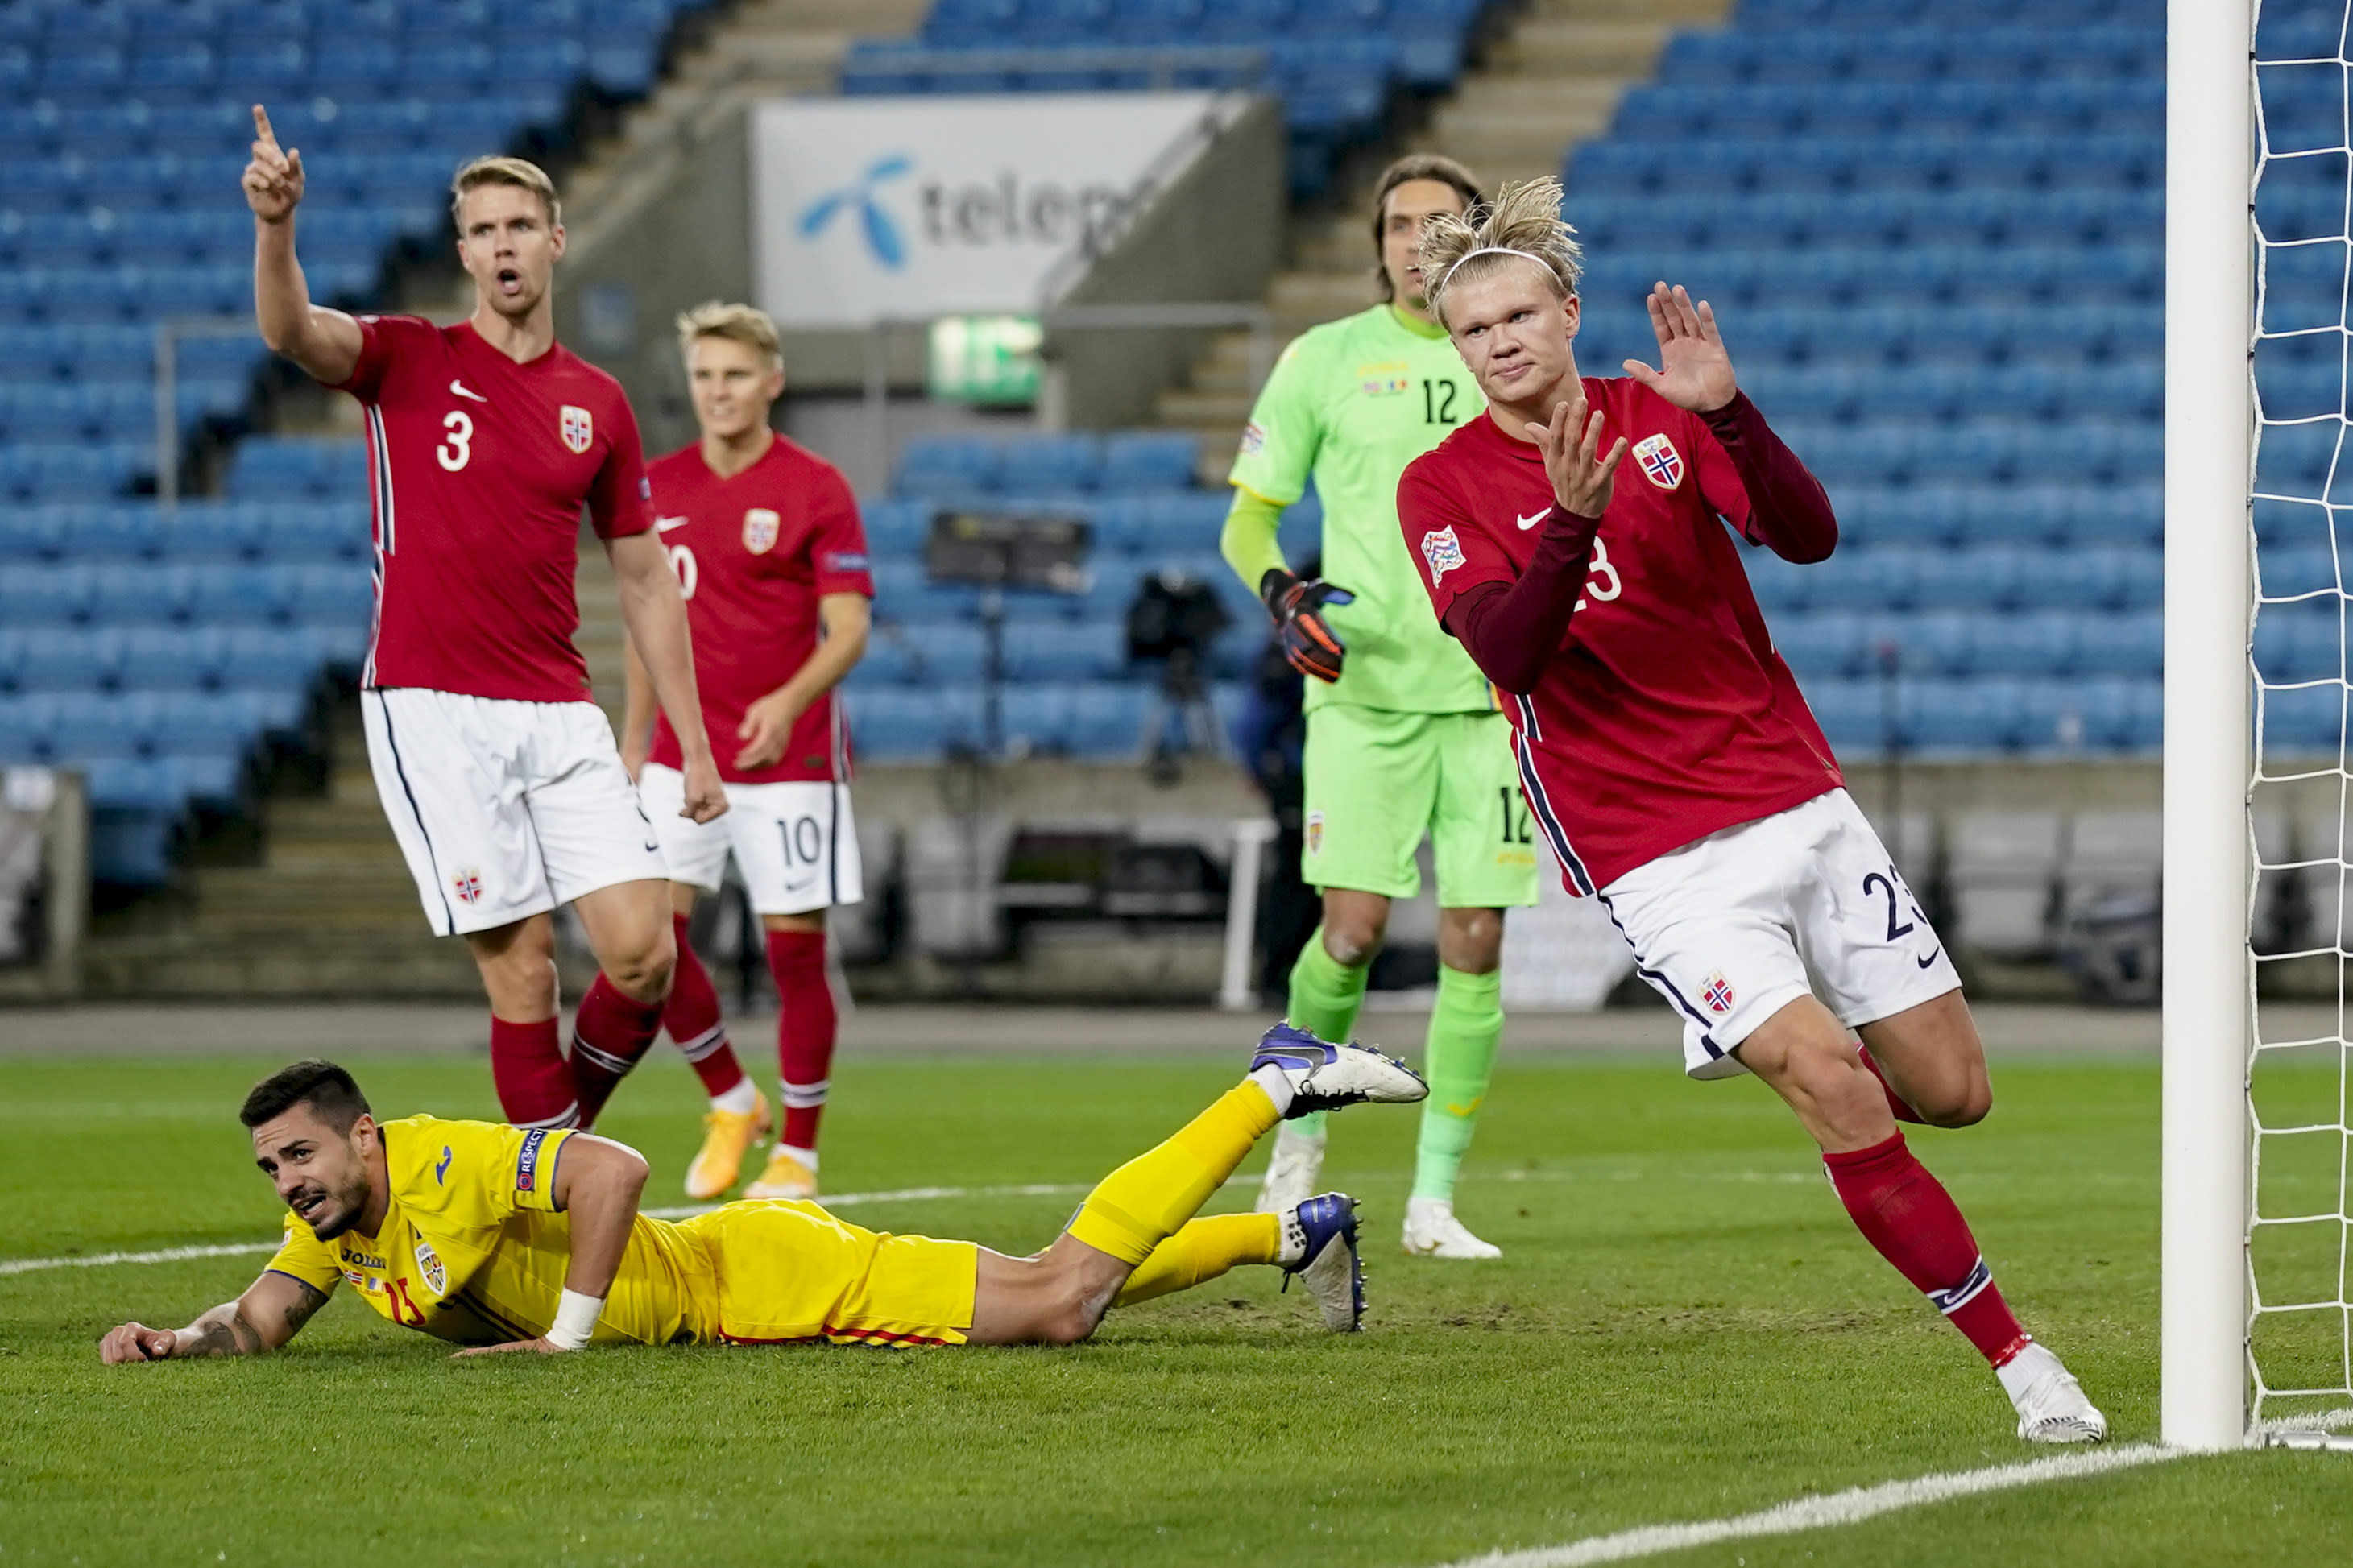 Norway's Erling Braut Haaland, right, celebrates after scoring, during the UEFA Nations League soccer match between Norway and Romania at Ullevaal Stadium, in Oslo, Sunday, Oct. 11, 2020, (Stian Lysberg Solum /NTB scanpix via AP)